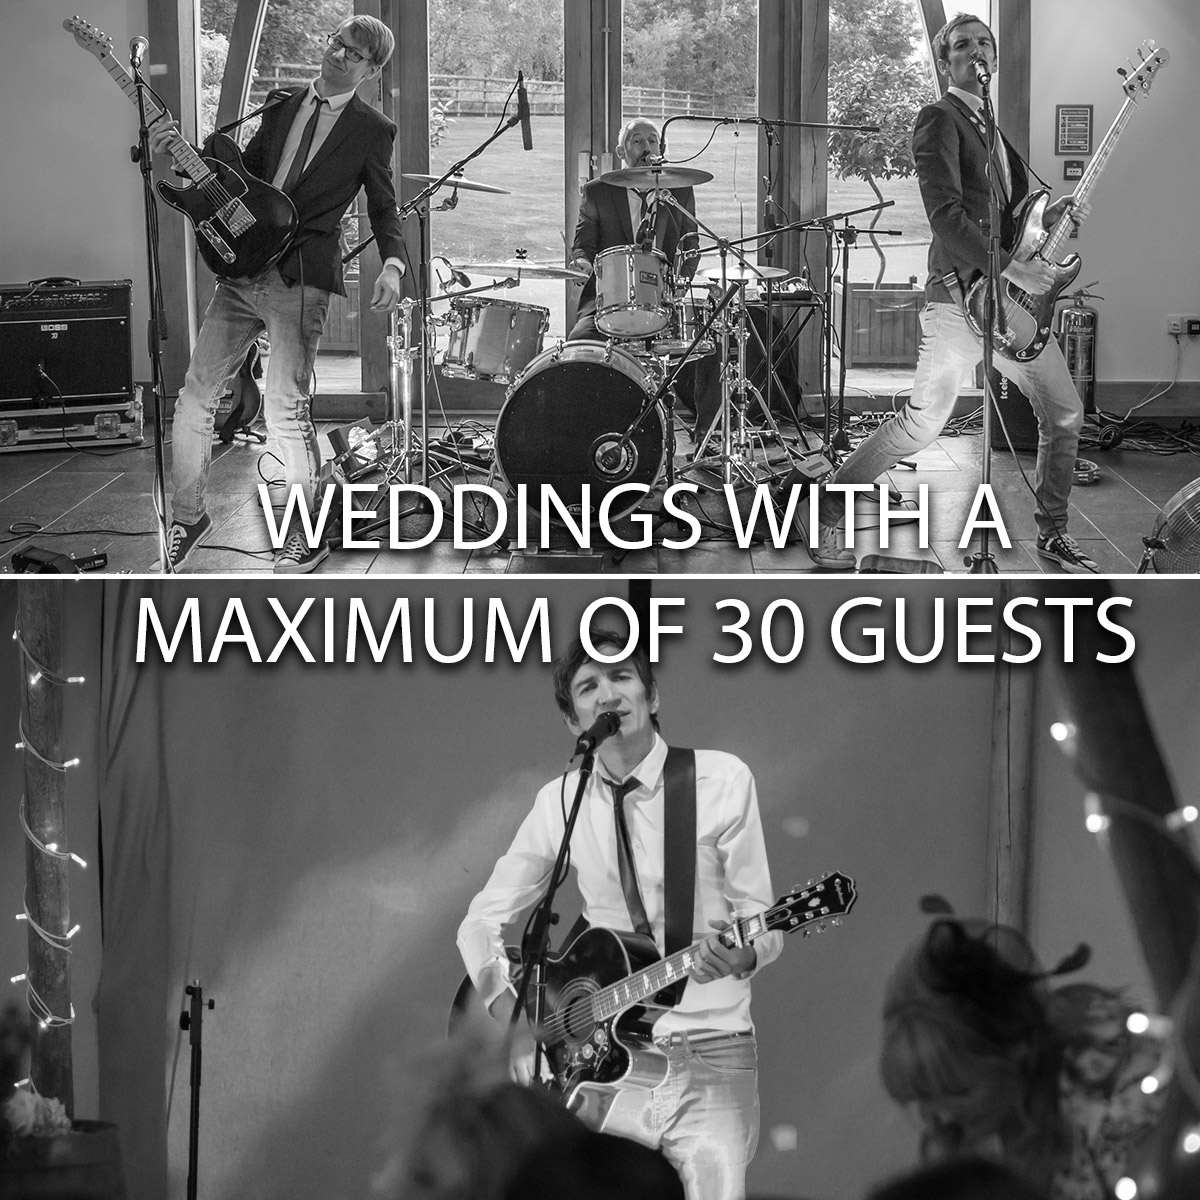 Weddings With A Maximum Of 30 Guests